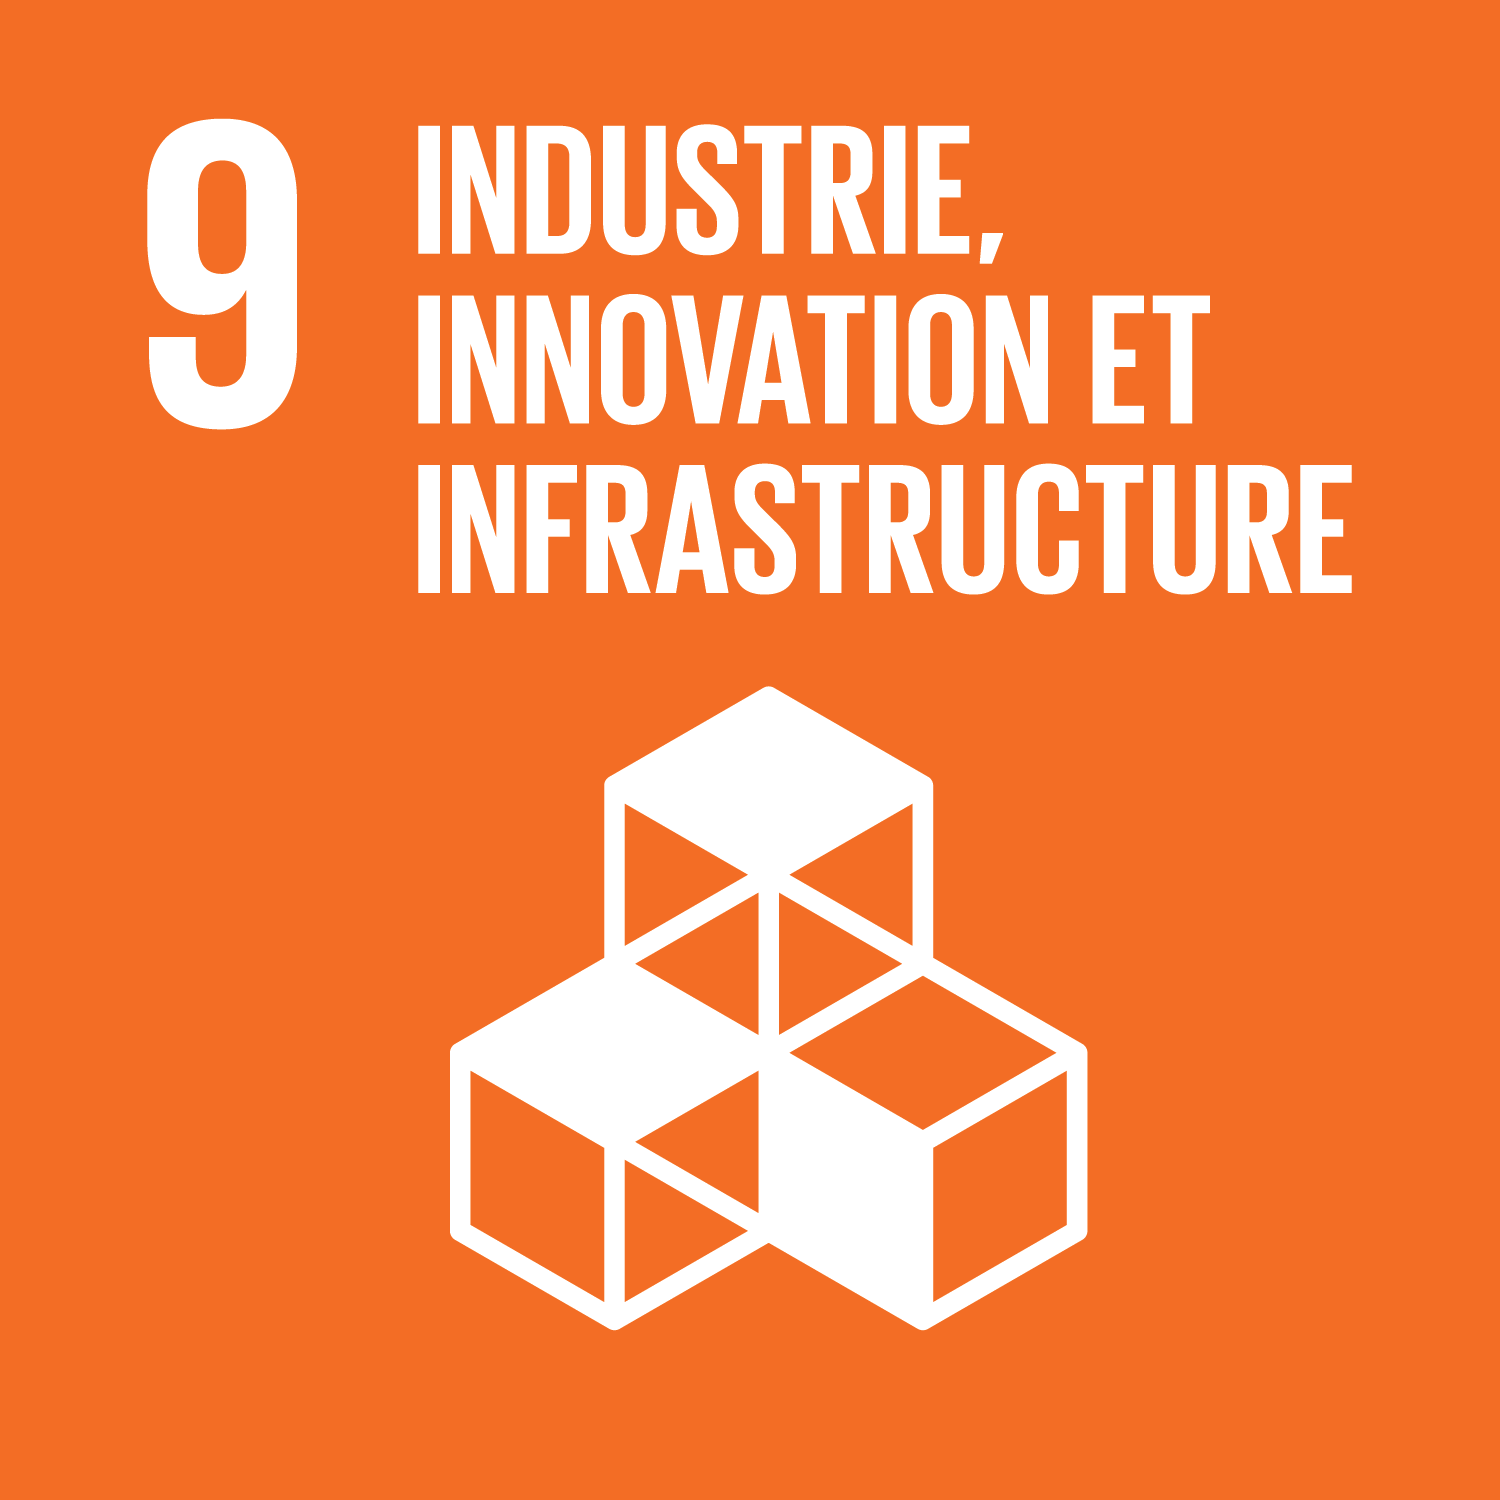 9 Industrie, innovation et infrastructure